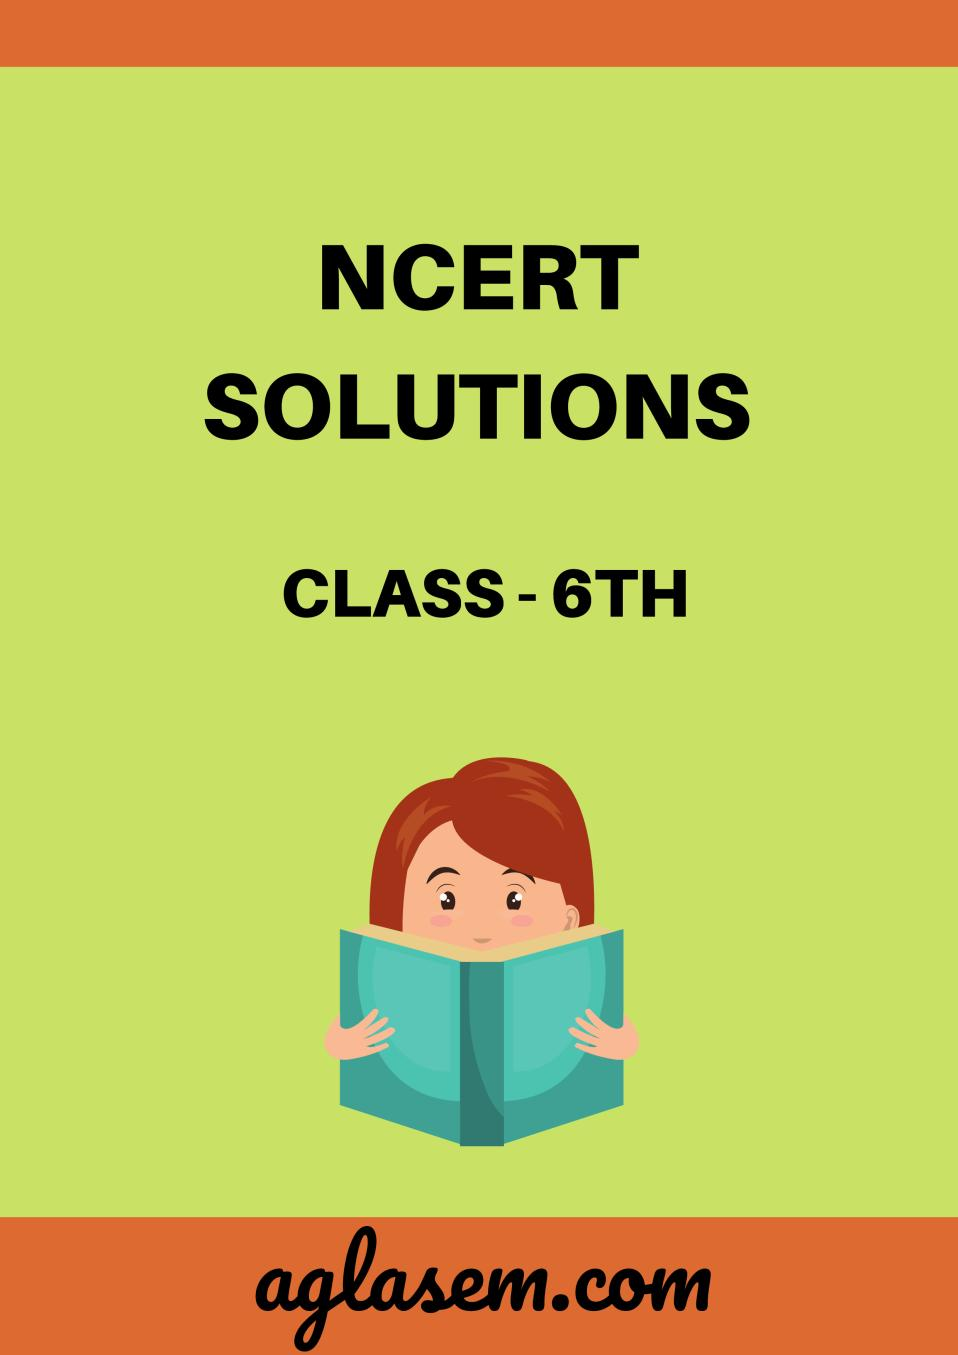 NCERT Solutions Class 6 English (A Pact with the Sun) Chapter 8 A Pact with the Sun